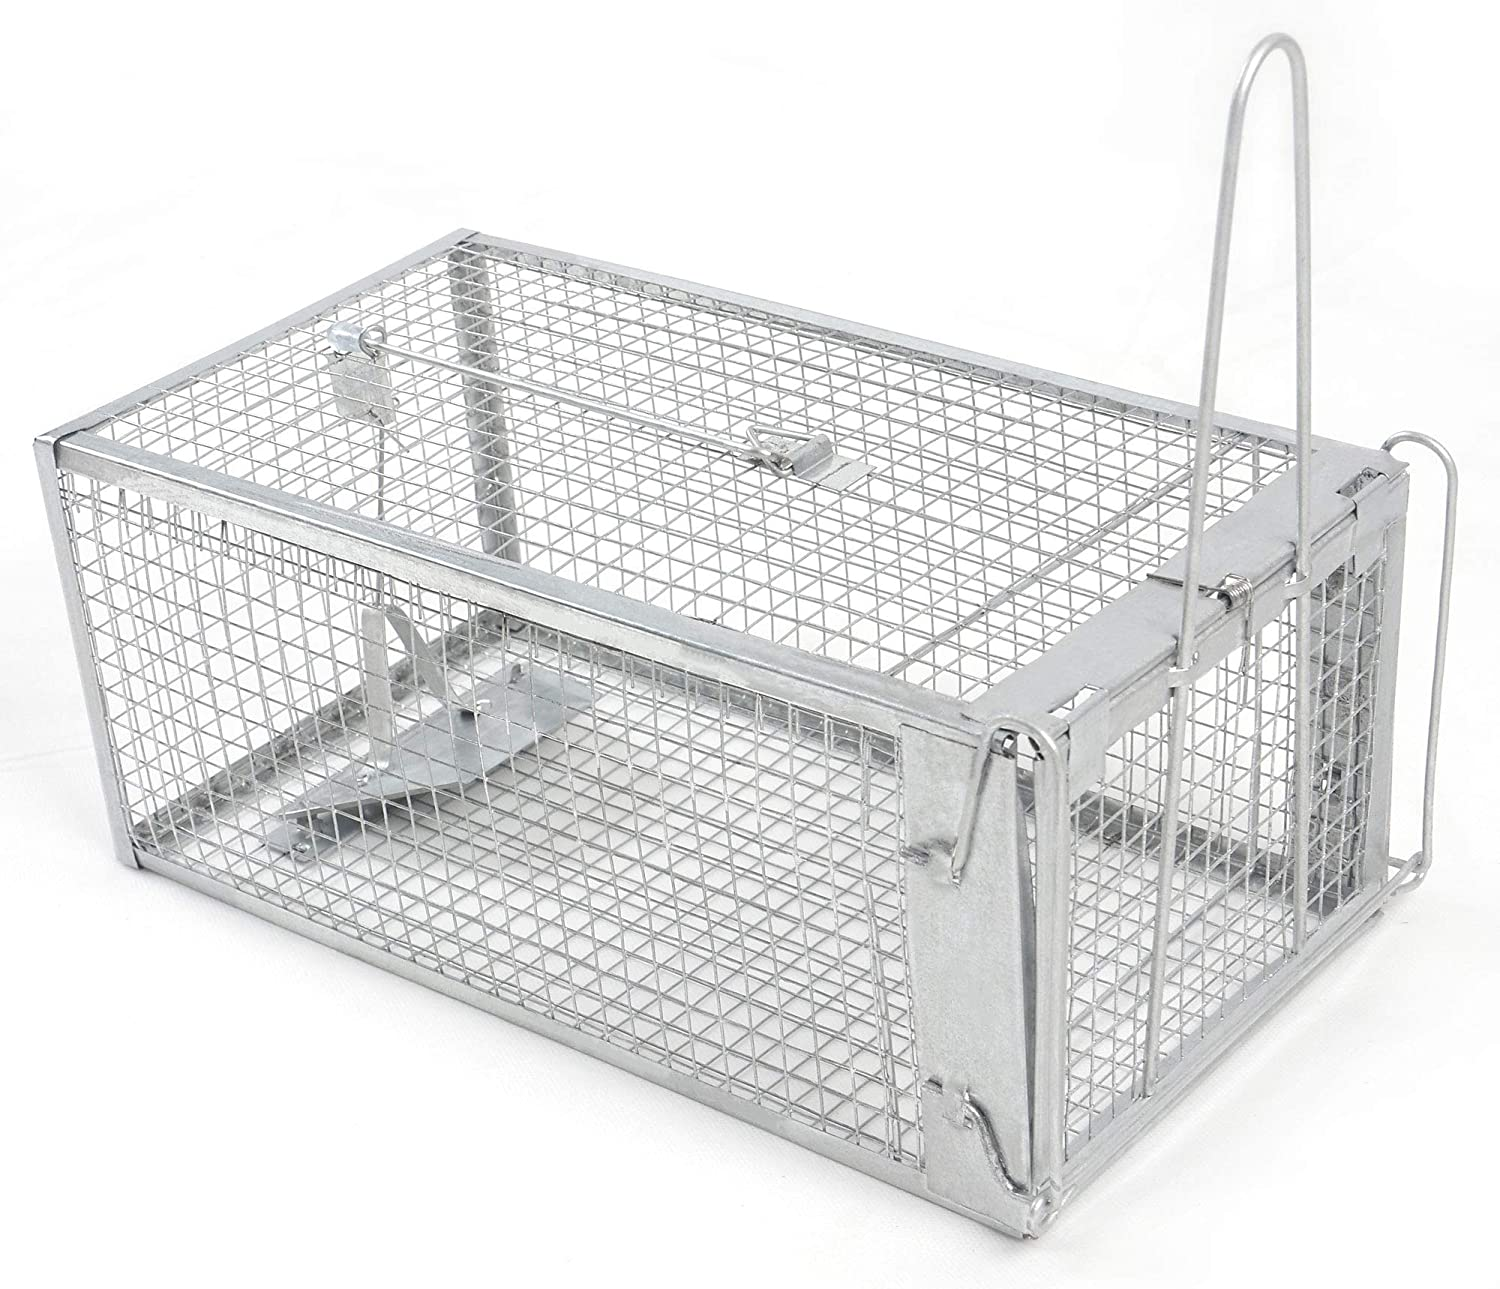 H&B Luxuries Rat Trap - Humane Live Animal Cage for Rat Mouse Hamster Mole Weasel Gopher Chipmunk Squirrels and More Rodents (12.7